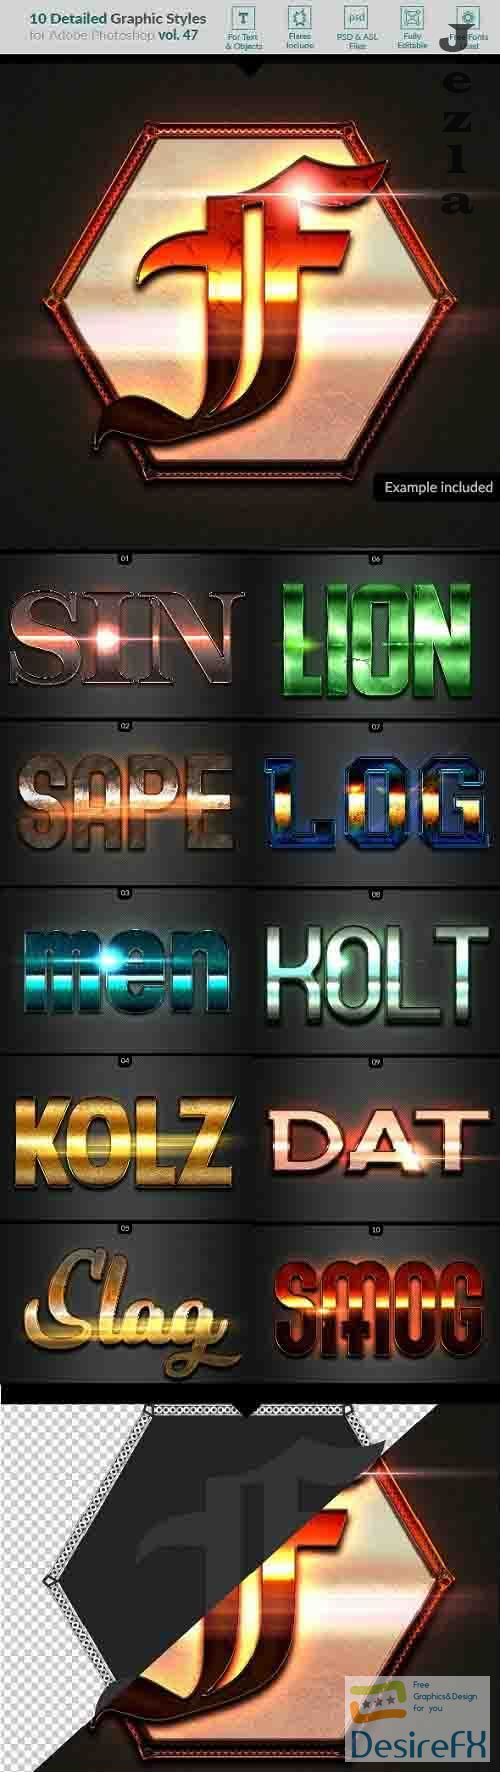 10 Text Effects Vol. 47 - 25885055